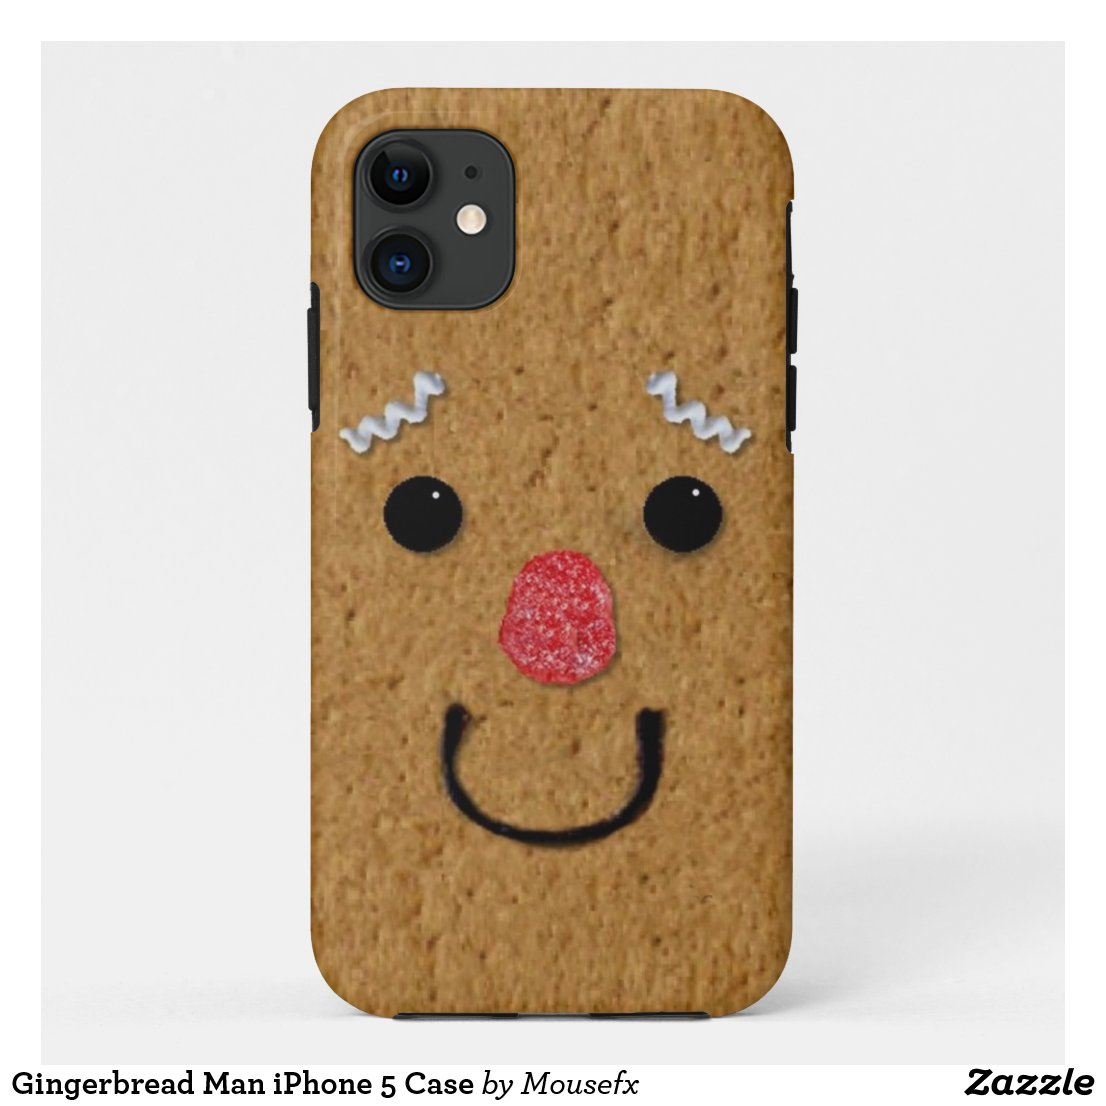 Gingerbread Man iPhone 5 Case